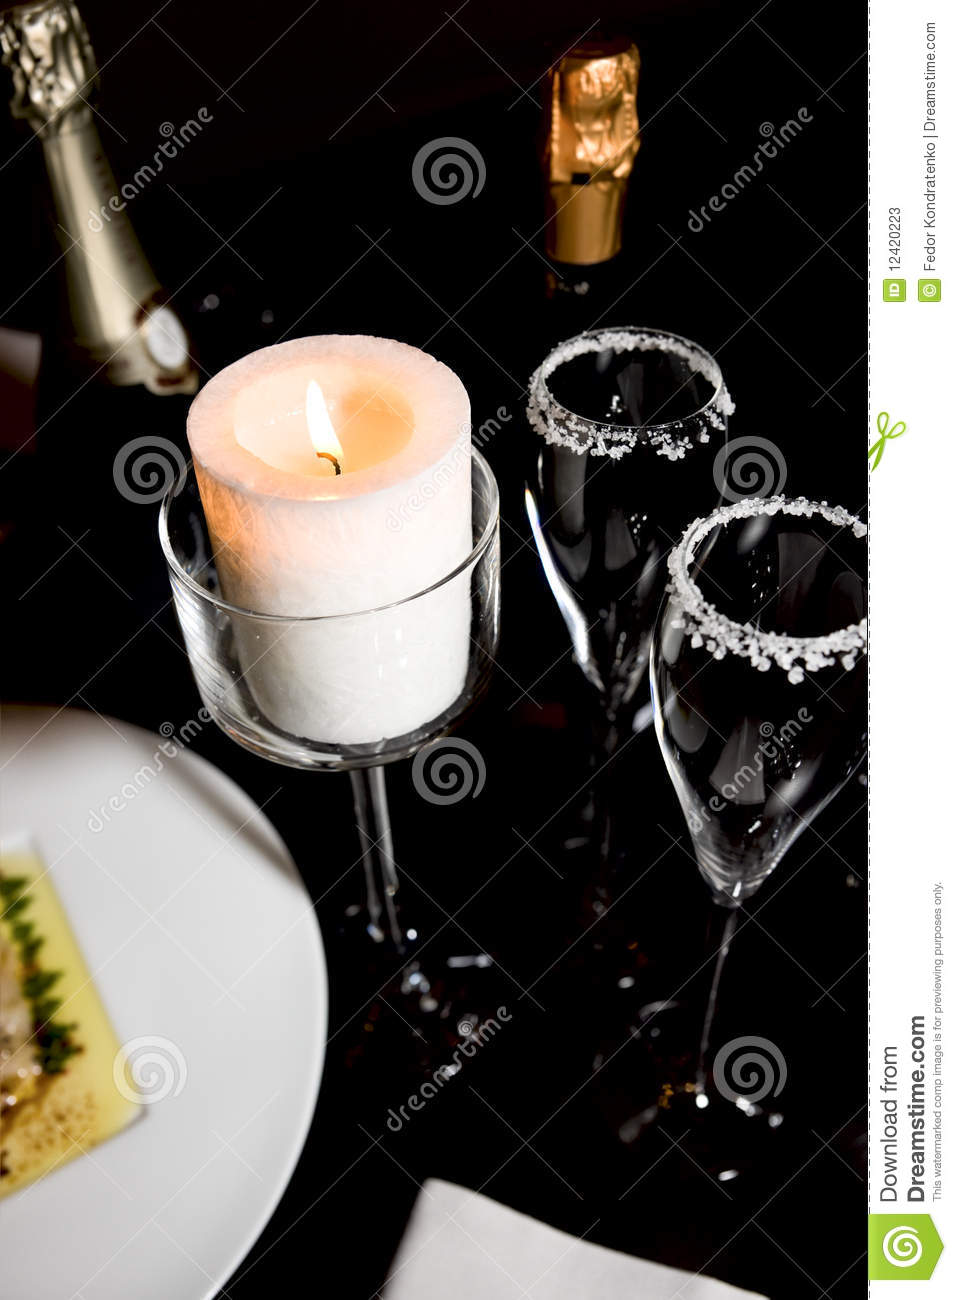 table arrangement of haute cusiine restaurants stock photos image 12420223. Black Bedroom Furniture Sets. Home Design Ideas